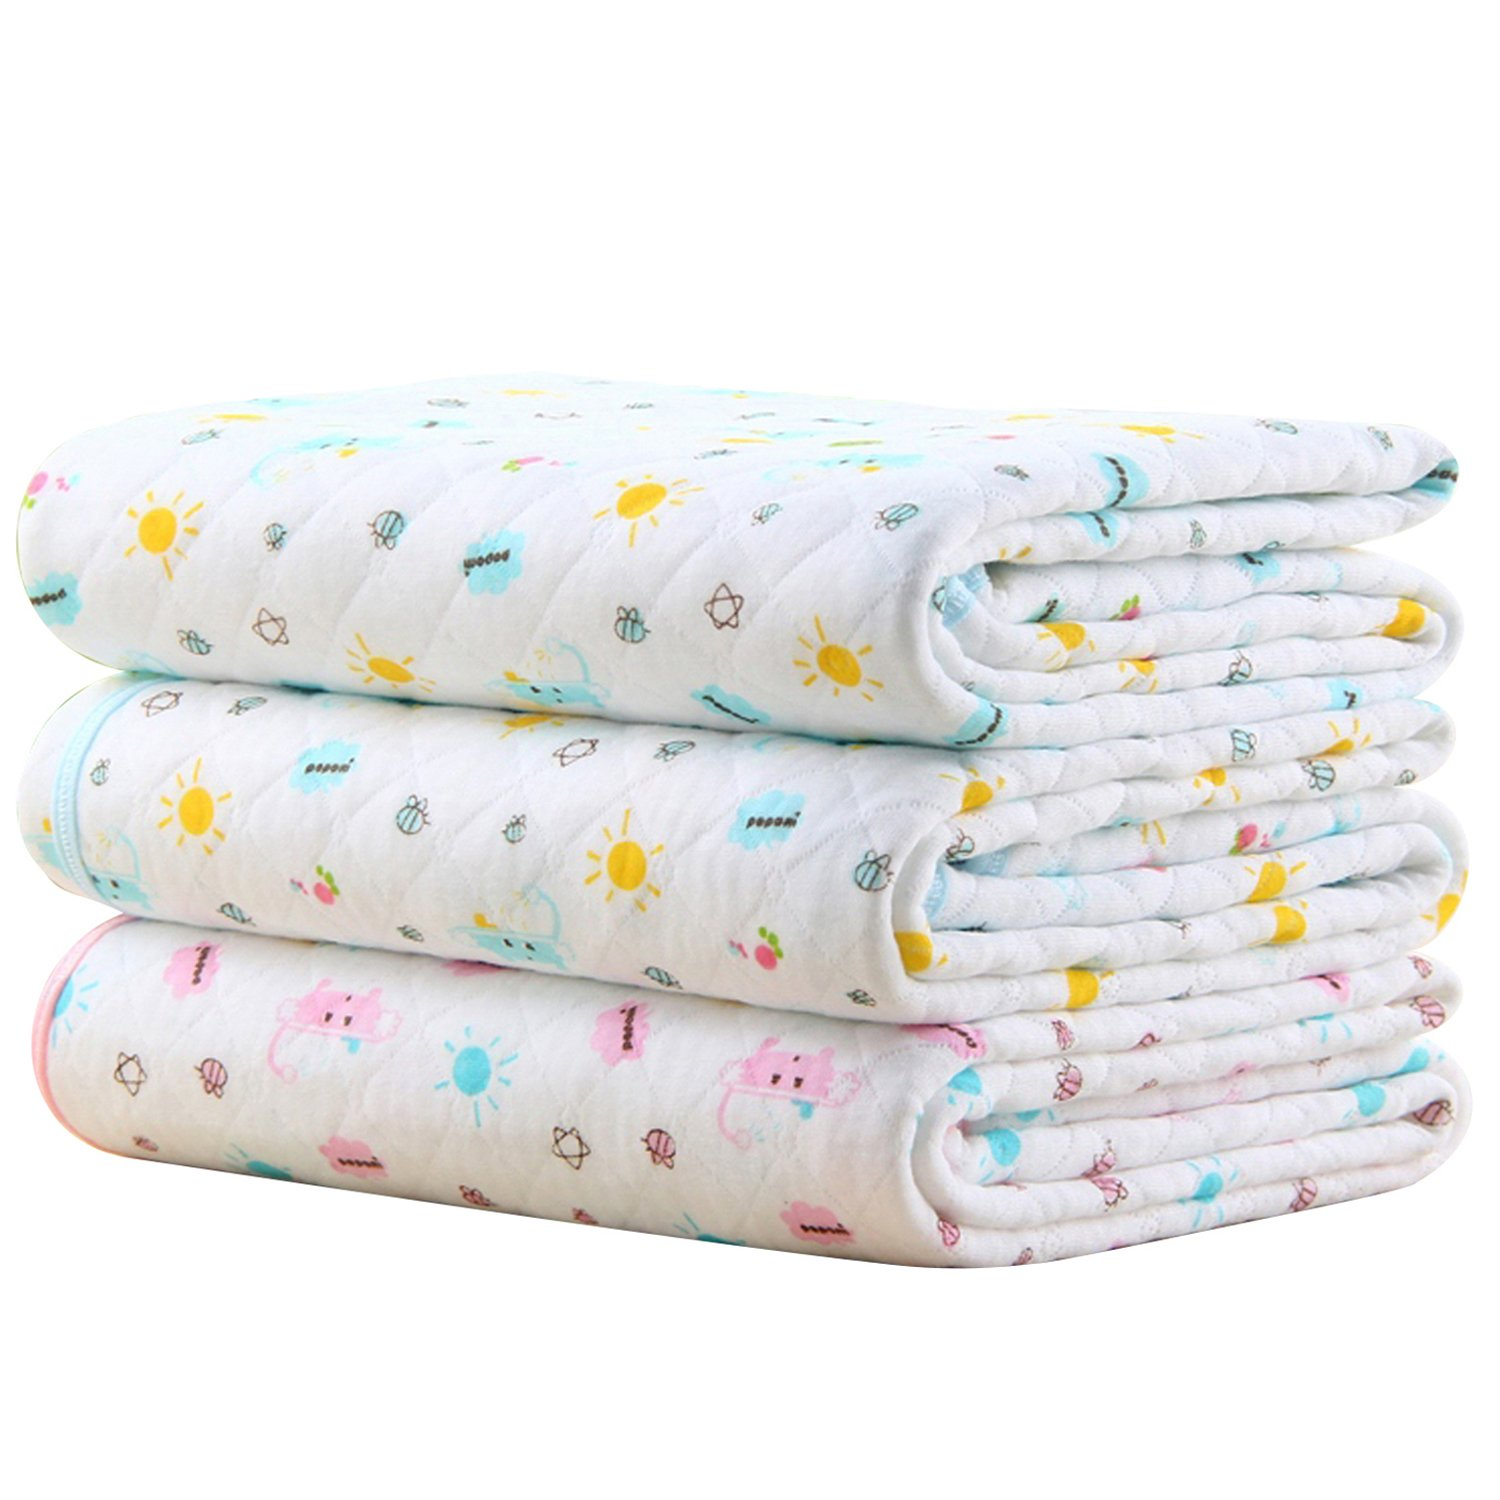 Baby Kid Waterproof Changing Pads - Breathable Mattress Pad Diapering Sheet Protector Menstrual Pads Pack of 3 (S (17.7 x 13.7 Inch)) Jerrybaby